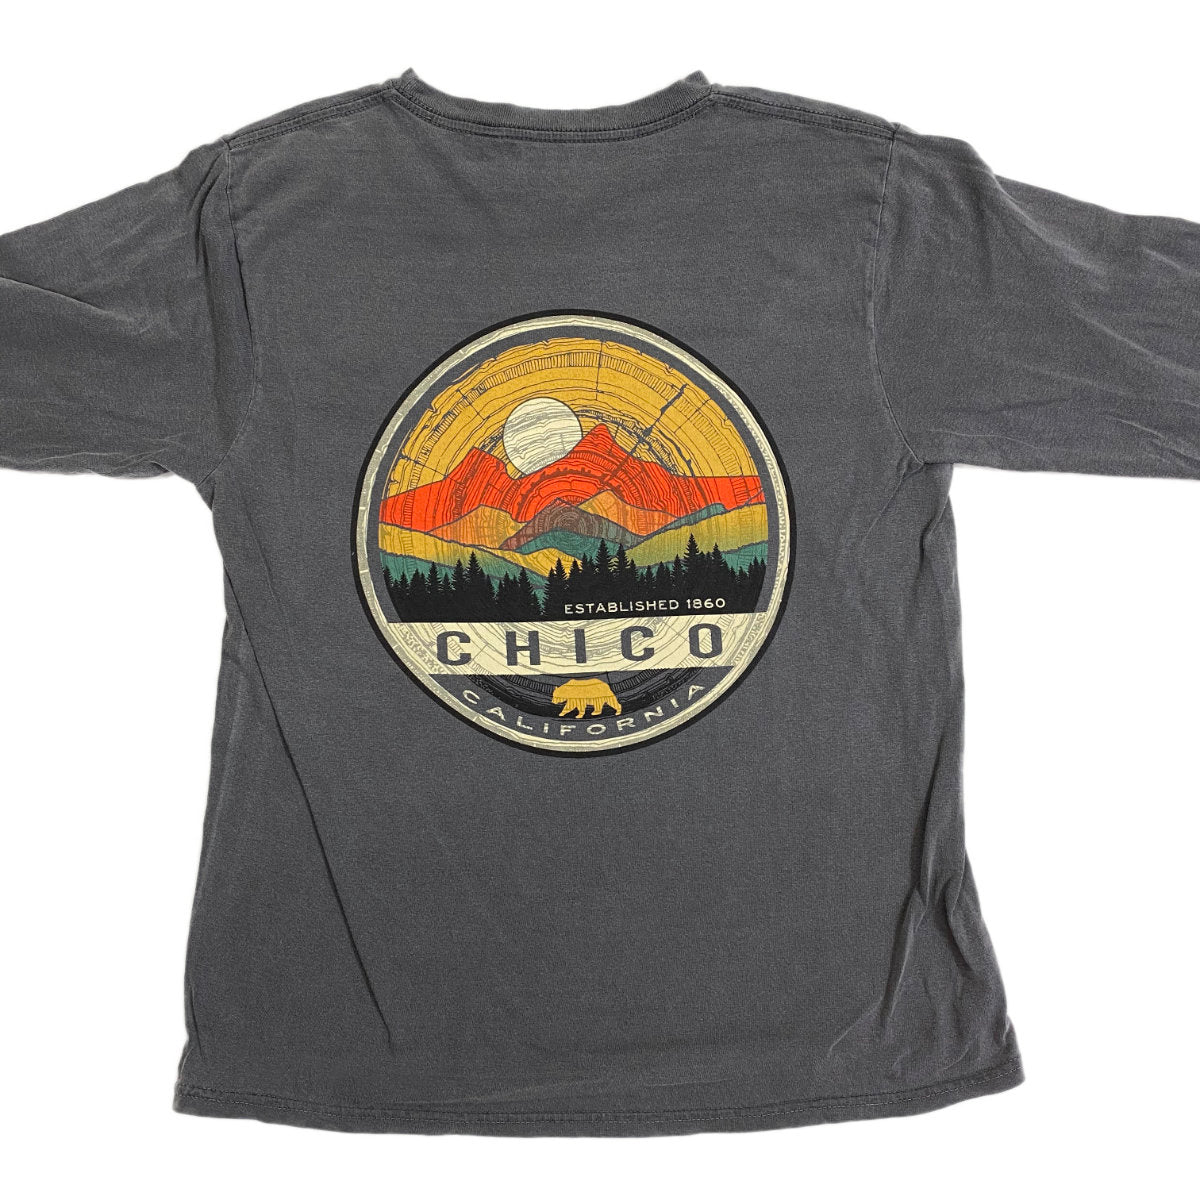 Epoch Mountain Long Sleeve Chico T-Shirt